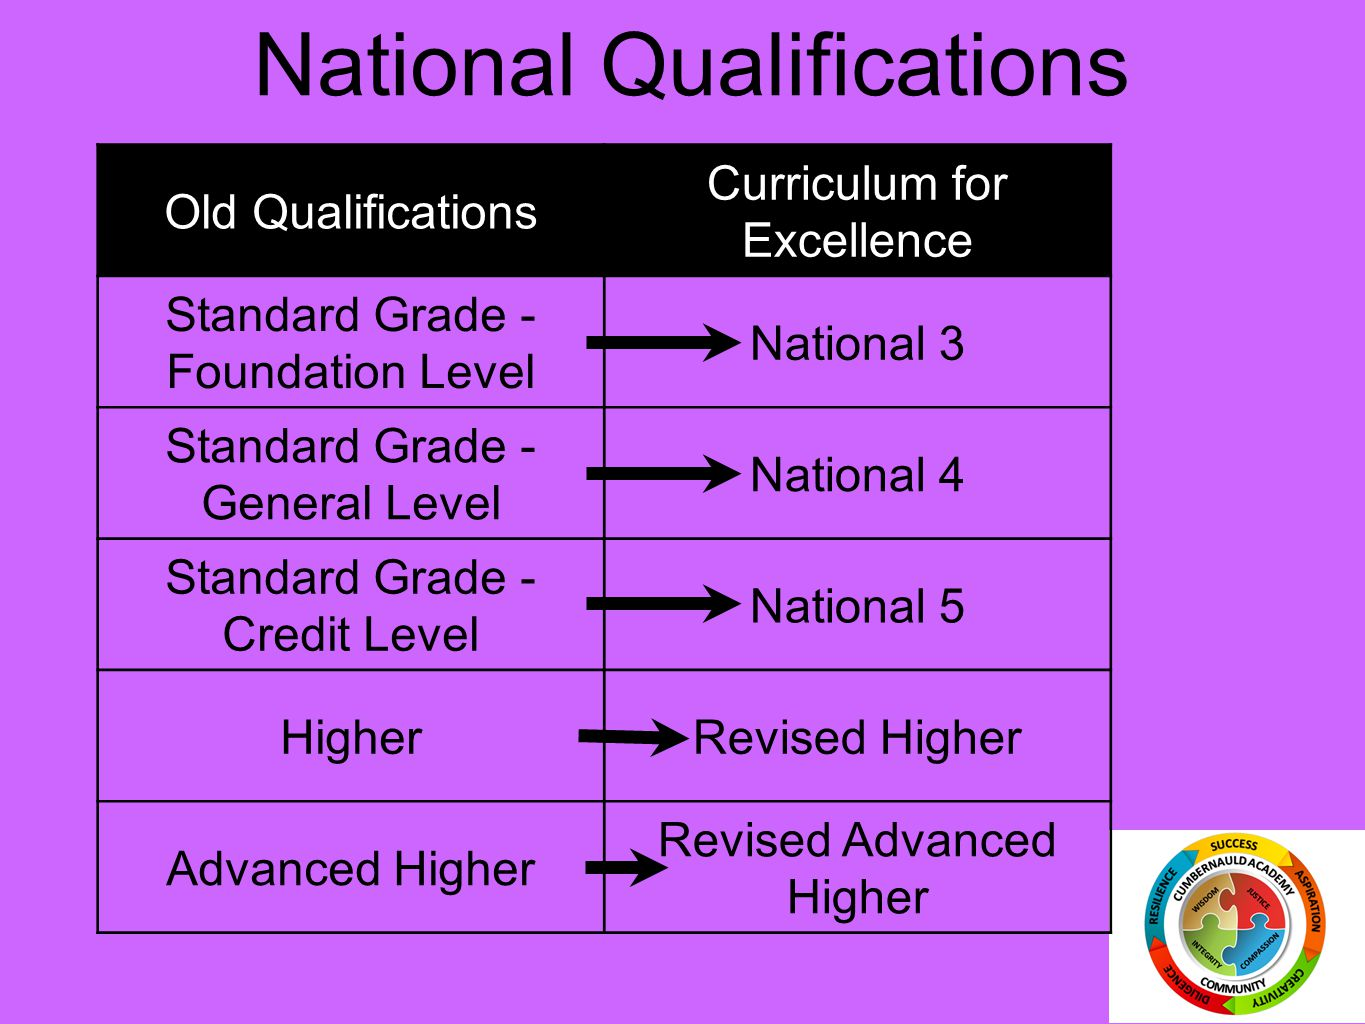 National Qualifications Old Qualifications Curriculum for Excellence Standard Grade - Foundation Level National 3 Standard Grade - General Level National 4 Standard Grade - Credit Level National 5 HigherRevised Higher Advanced Higher Revised Advanced Higher